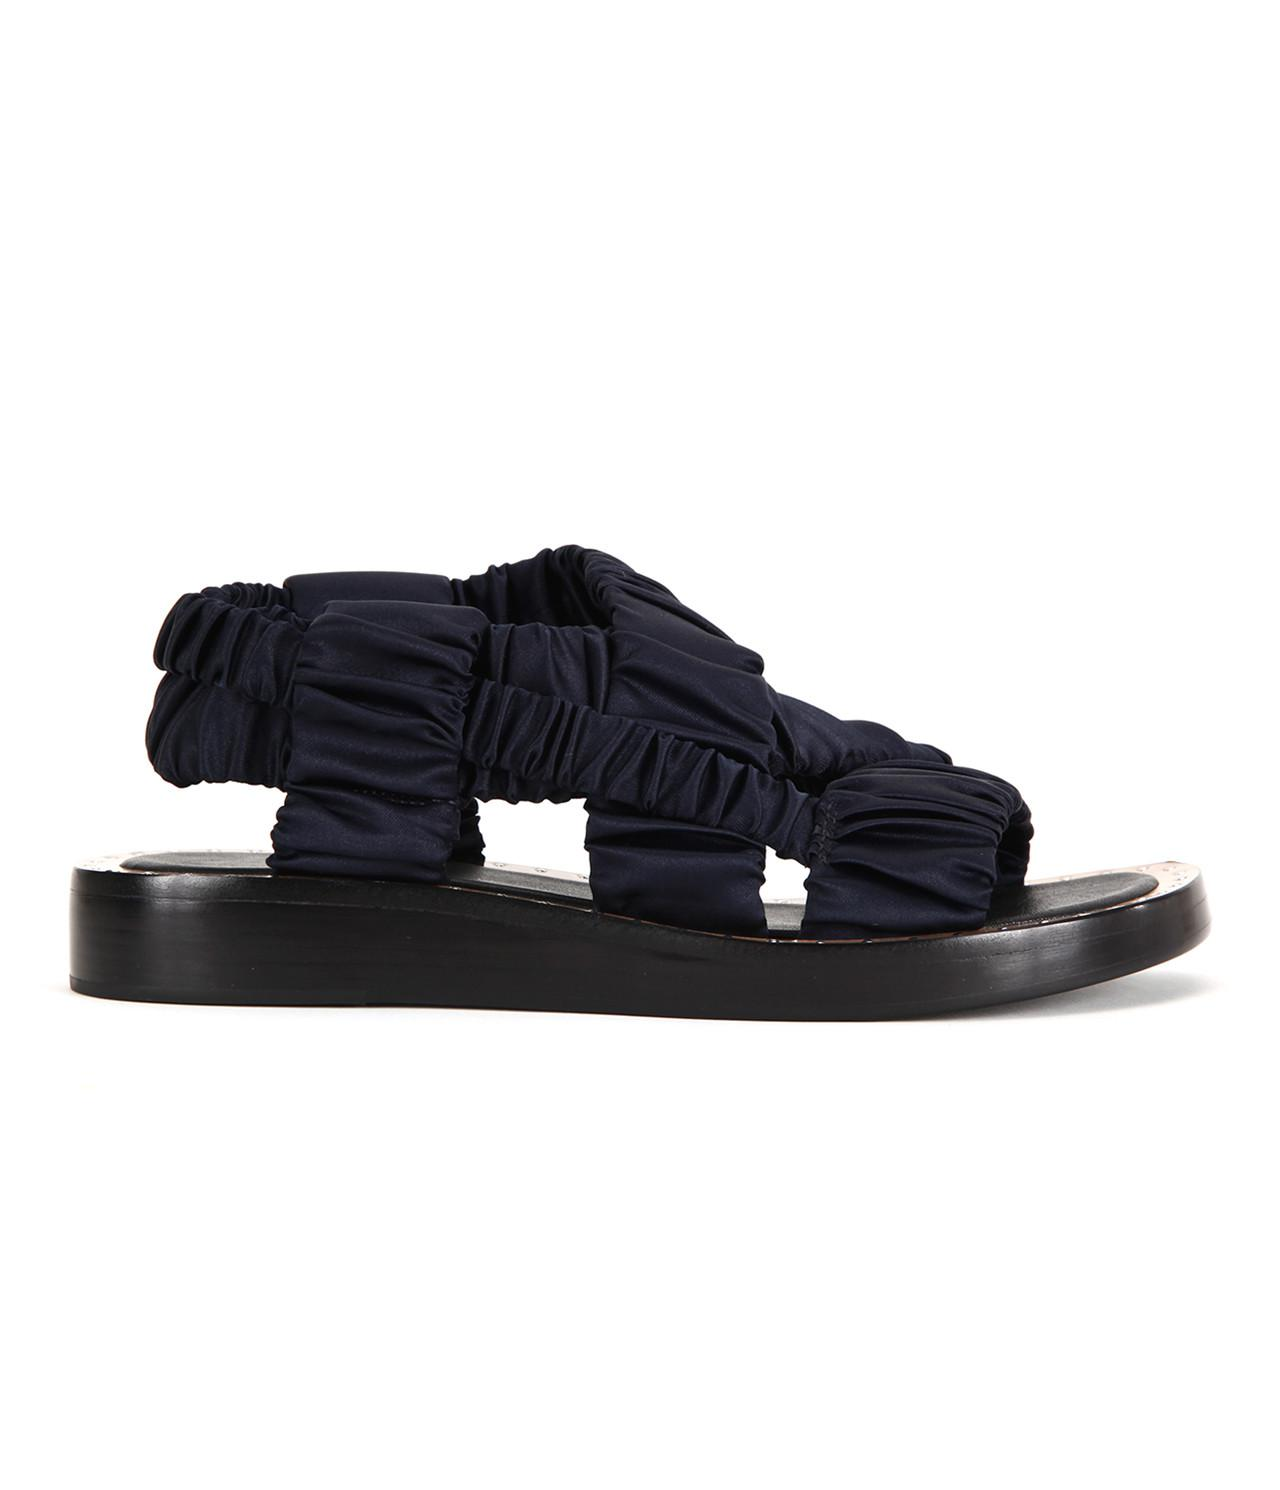 43bc023c350f 3.1 Phillip Lim Nagano Flat Rouched Sandal in Blue - Save ...